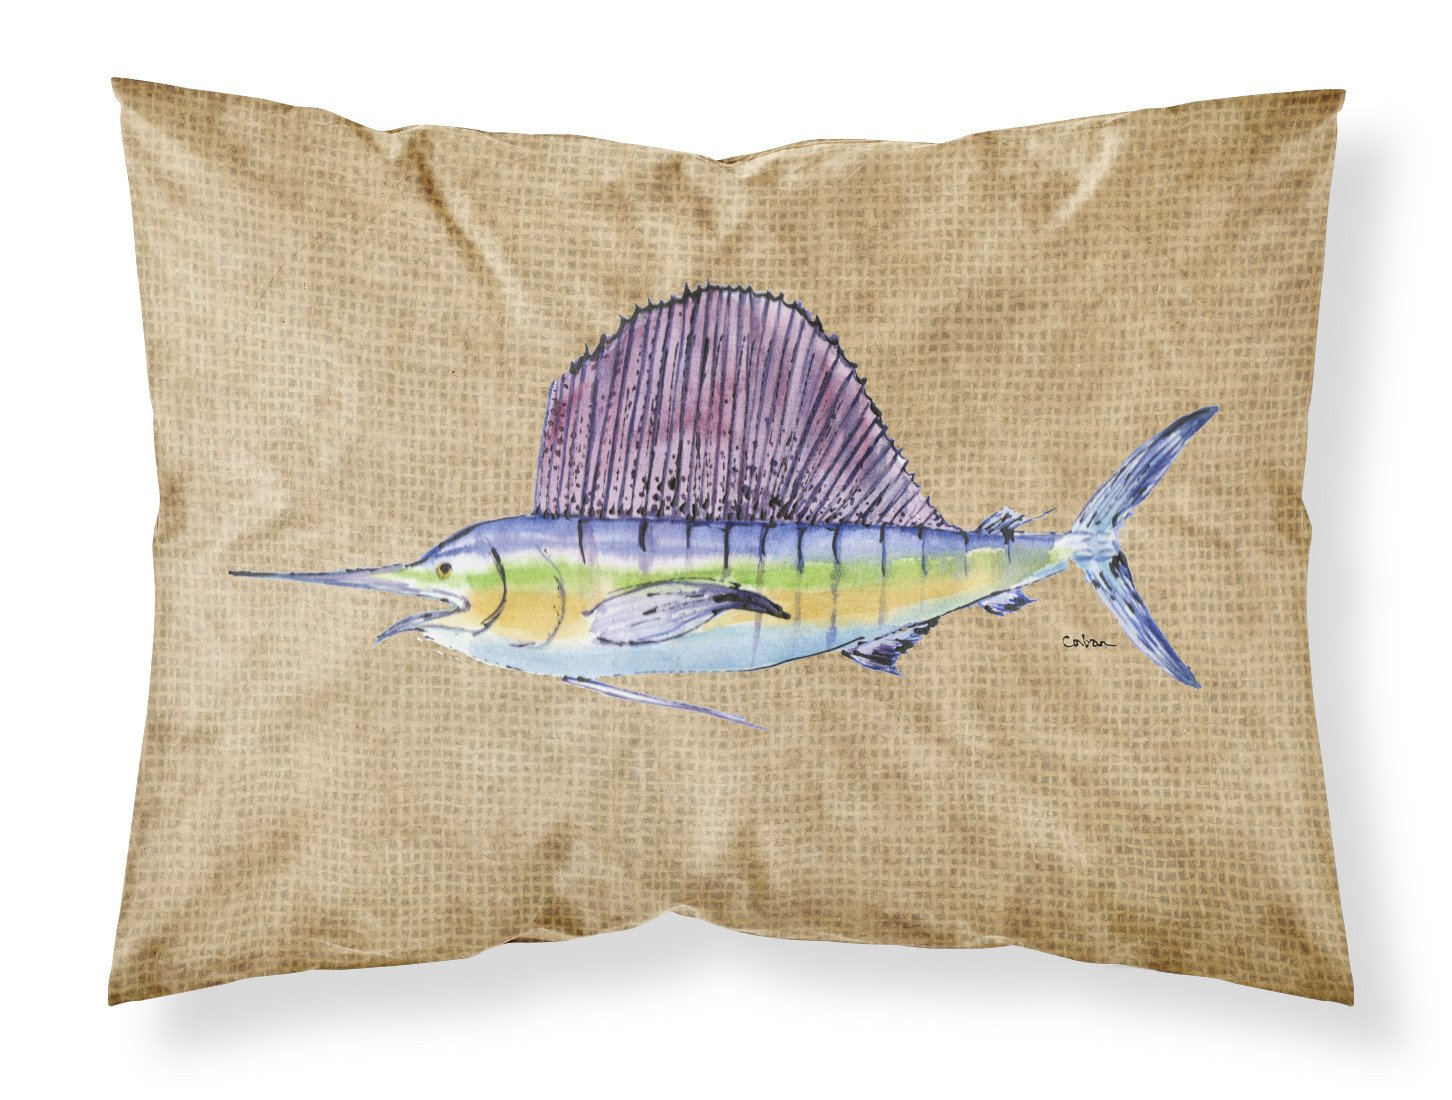 Swordfish Moisture wicking Fabric standard pillowcase by Caroline's Treasures